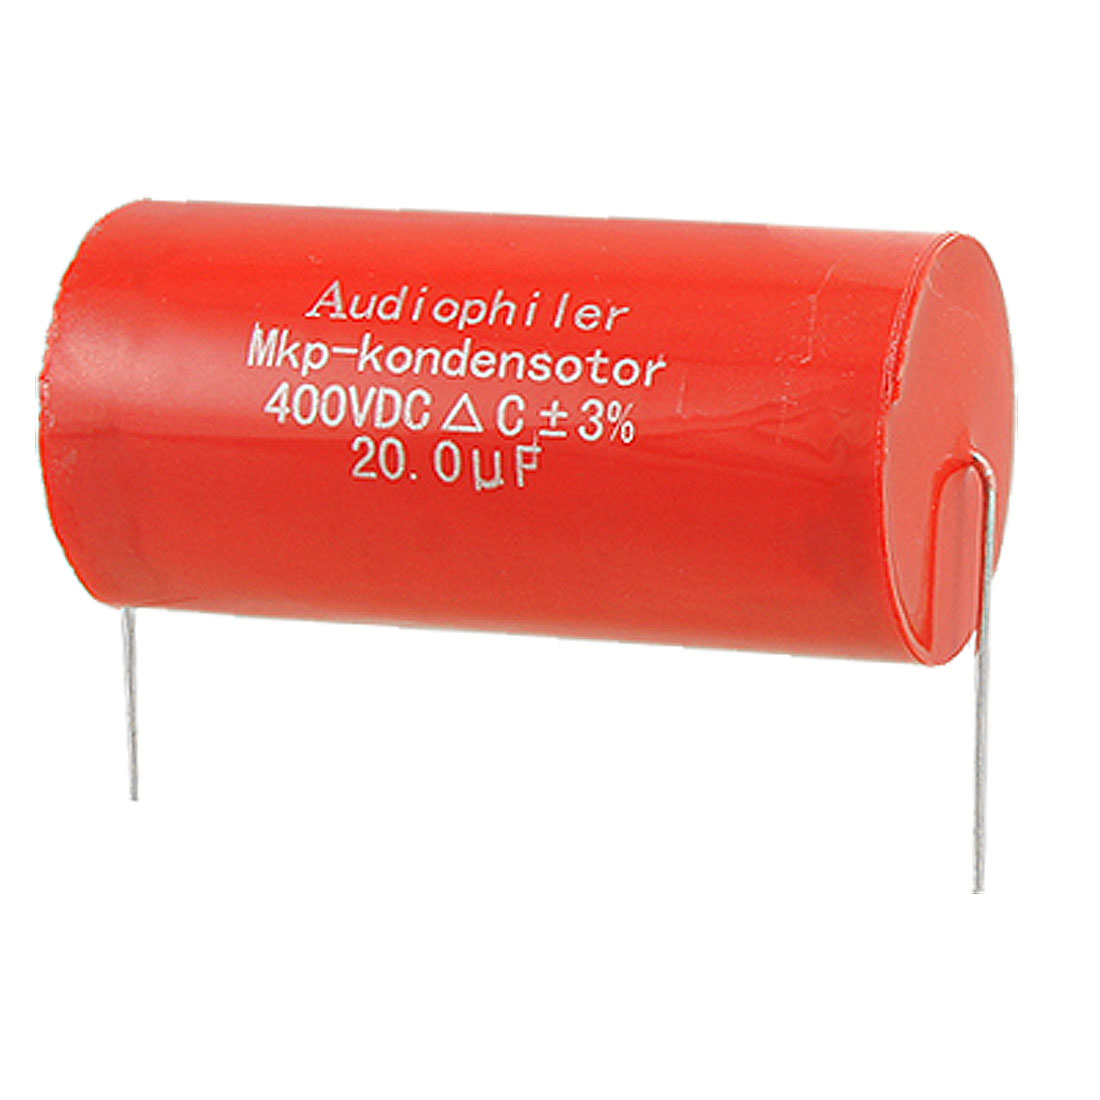 20uF DC 400V Axial Lead Electrolytic Tubular Audio Capacitor